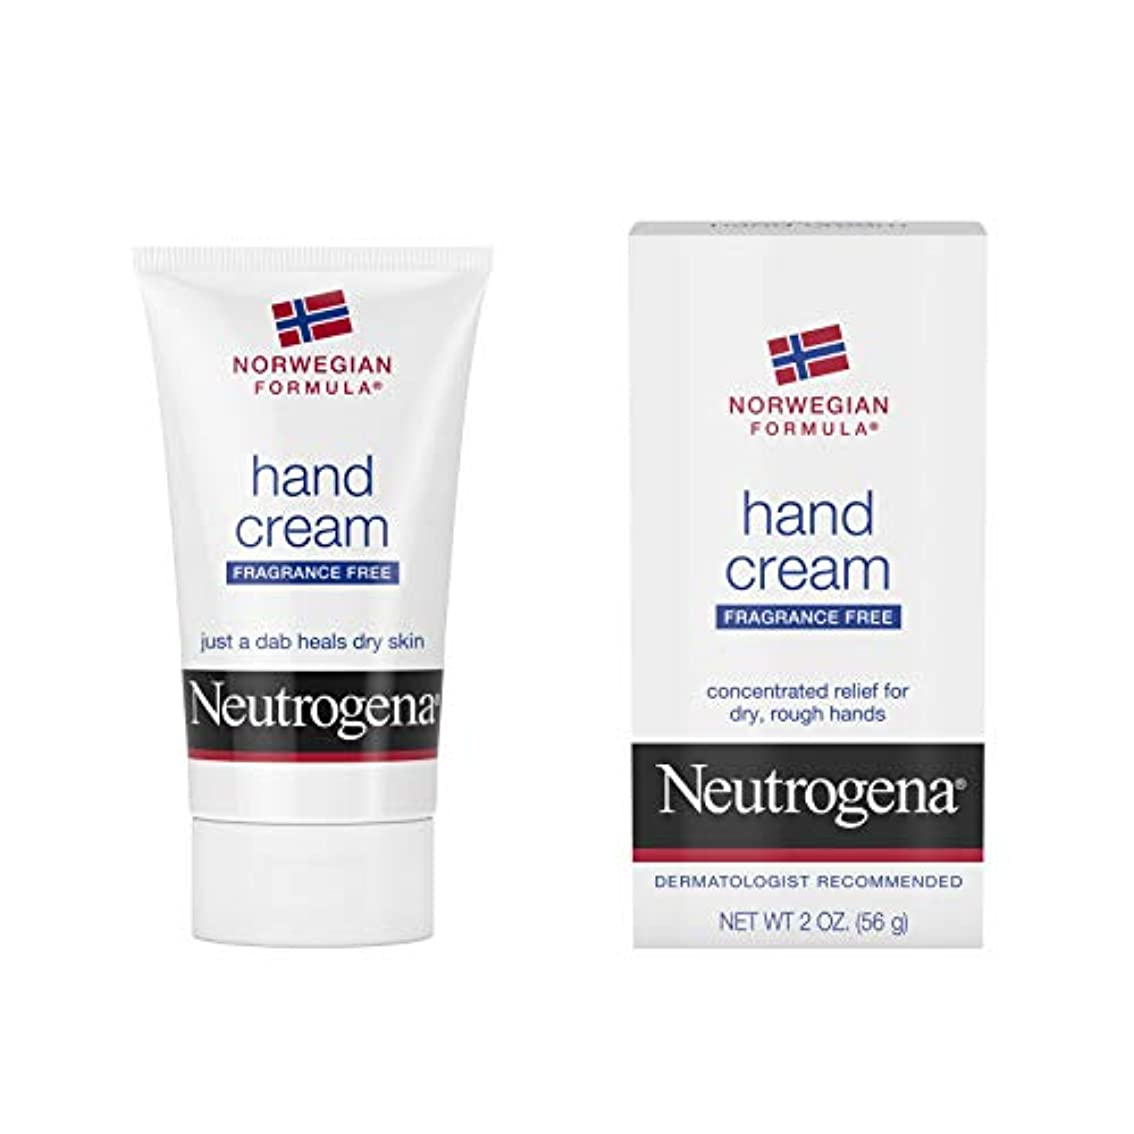 エラー汚す有効Neutrogena Norwegian Formula Hand Cream Fragrance-Free 60 ml (並行輸入品)